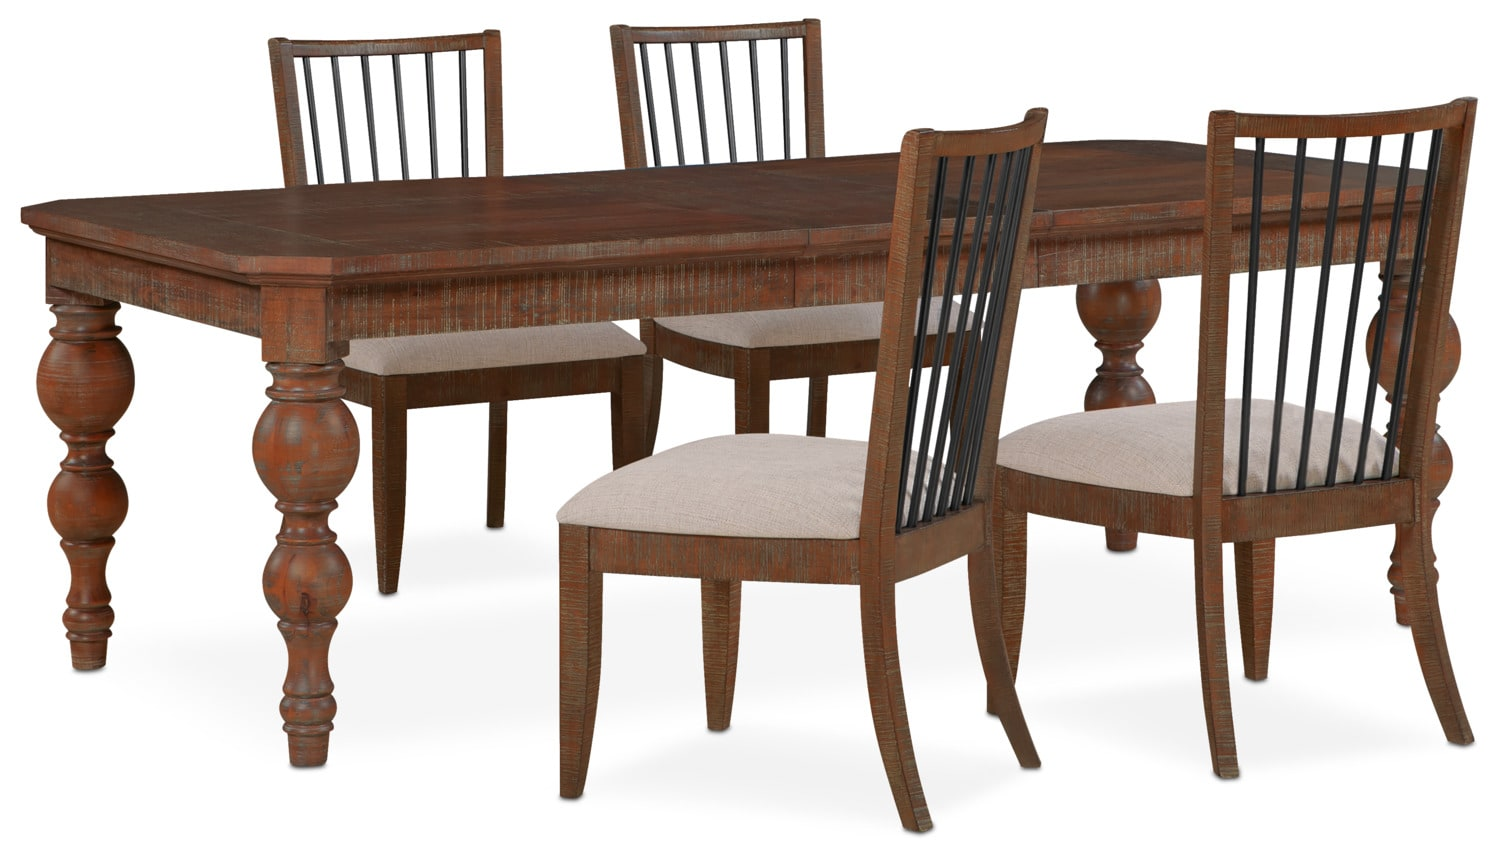 Dining Room Furniture - Gristmill Dining Table and 4 Side Chairs